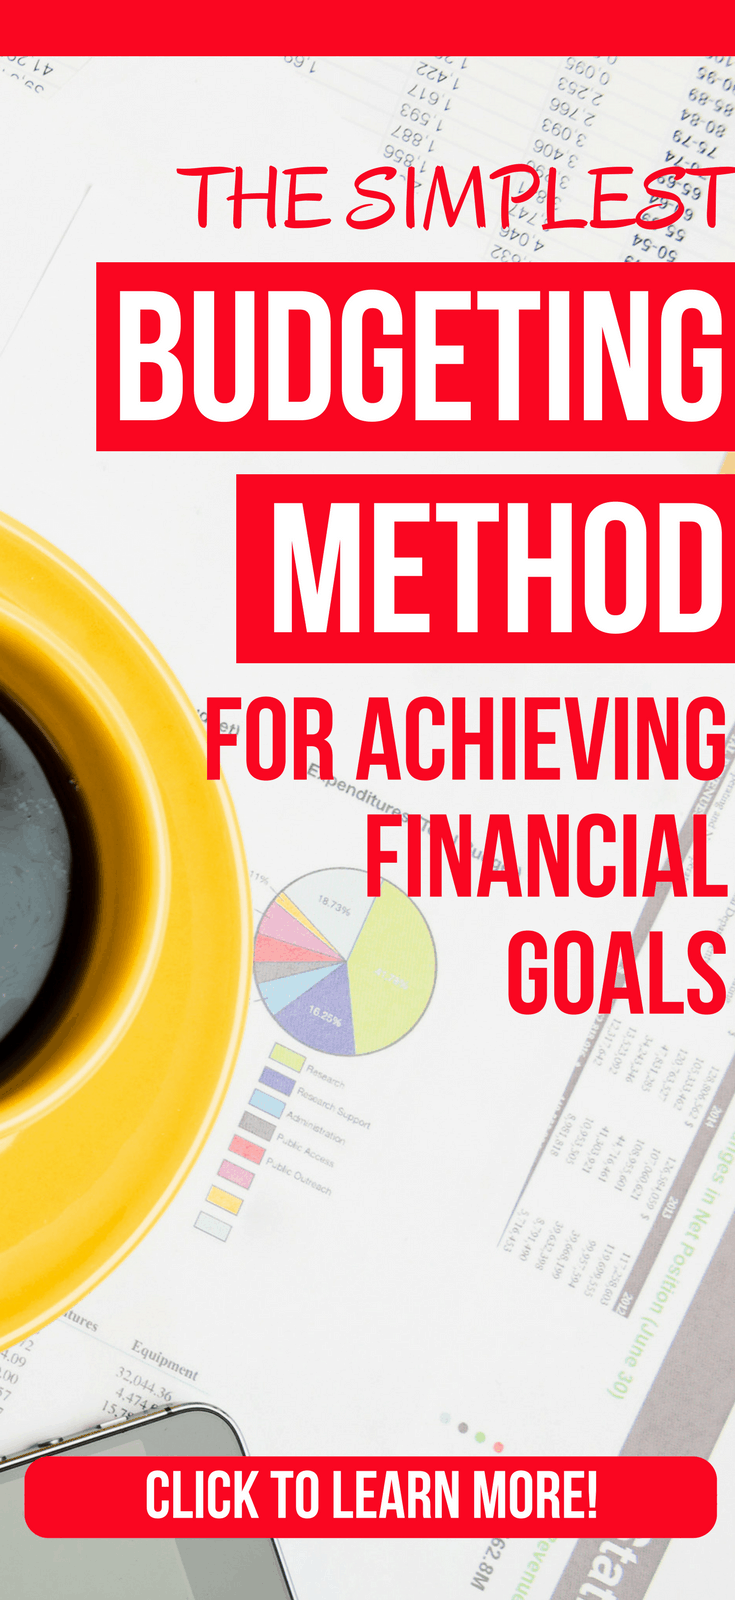 The Simplest Budgeting Method For Achieving Financial Goals